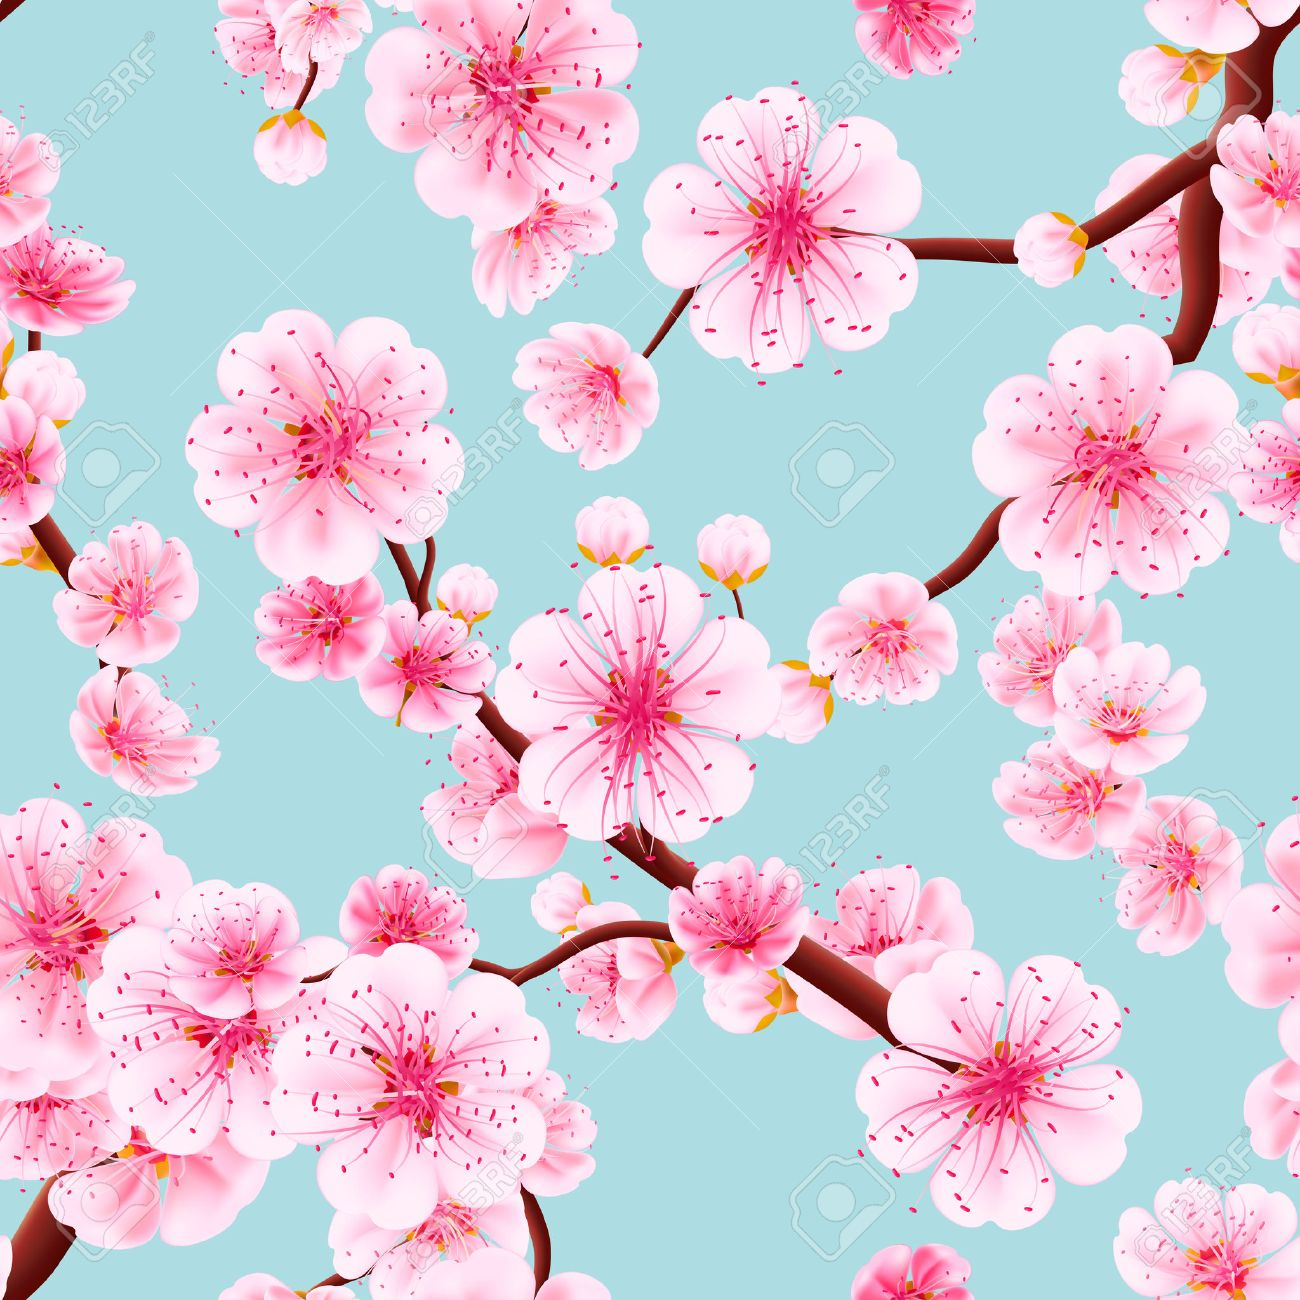 Seamless background pattern of pink Sakura blossom or Japanese flowering cherry symbolic of Spring in a random arrangement square format suitable for textile. EPS 10 vector file included - 57412049